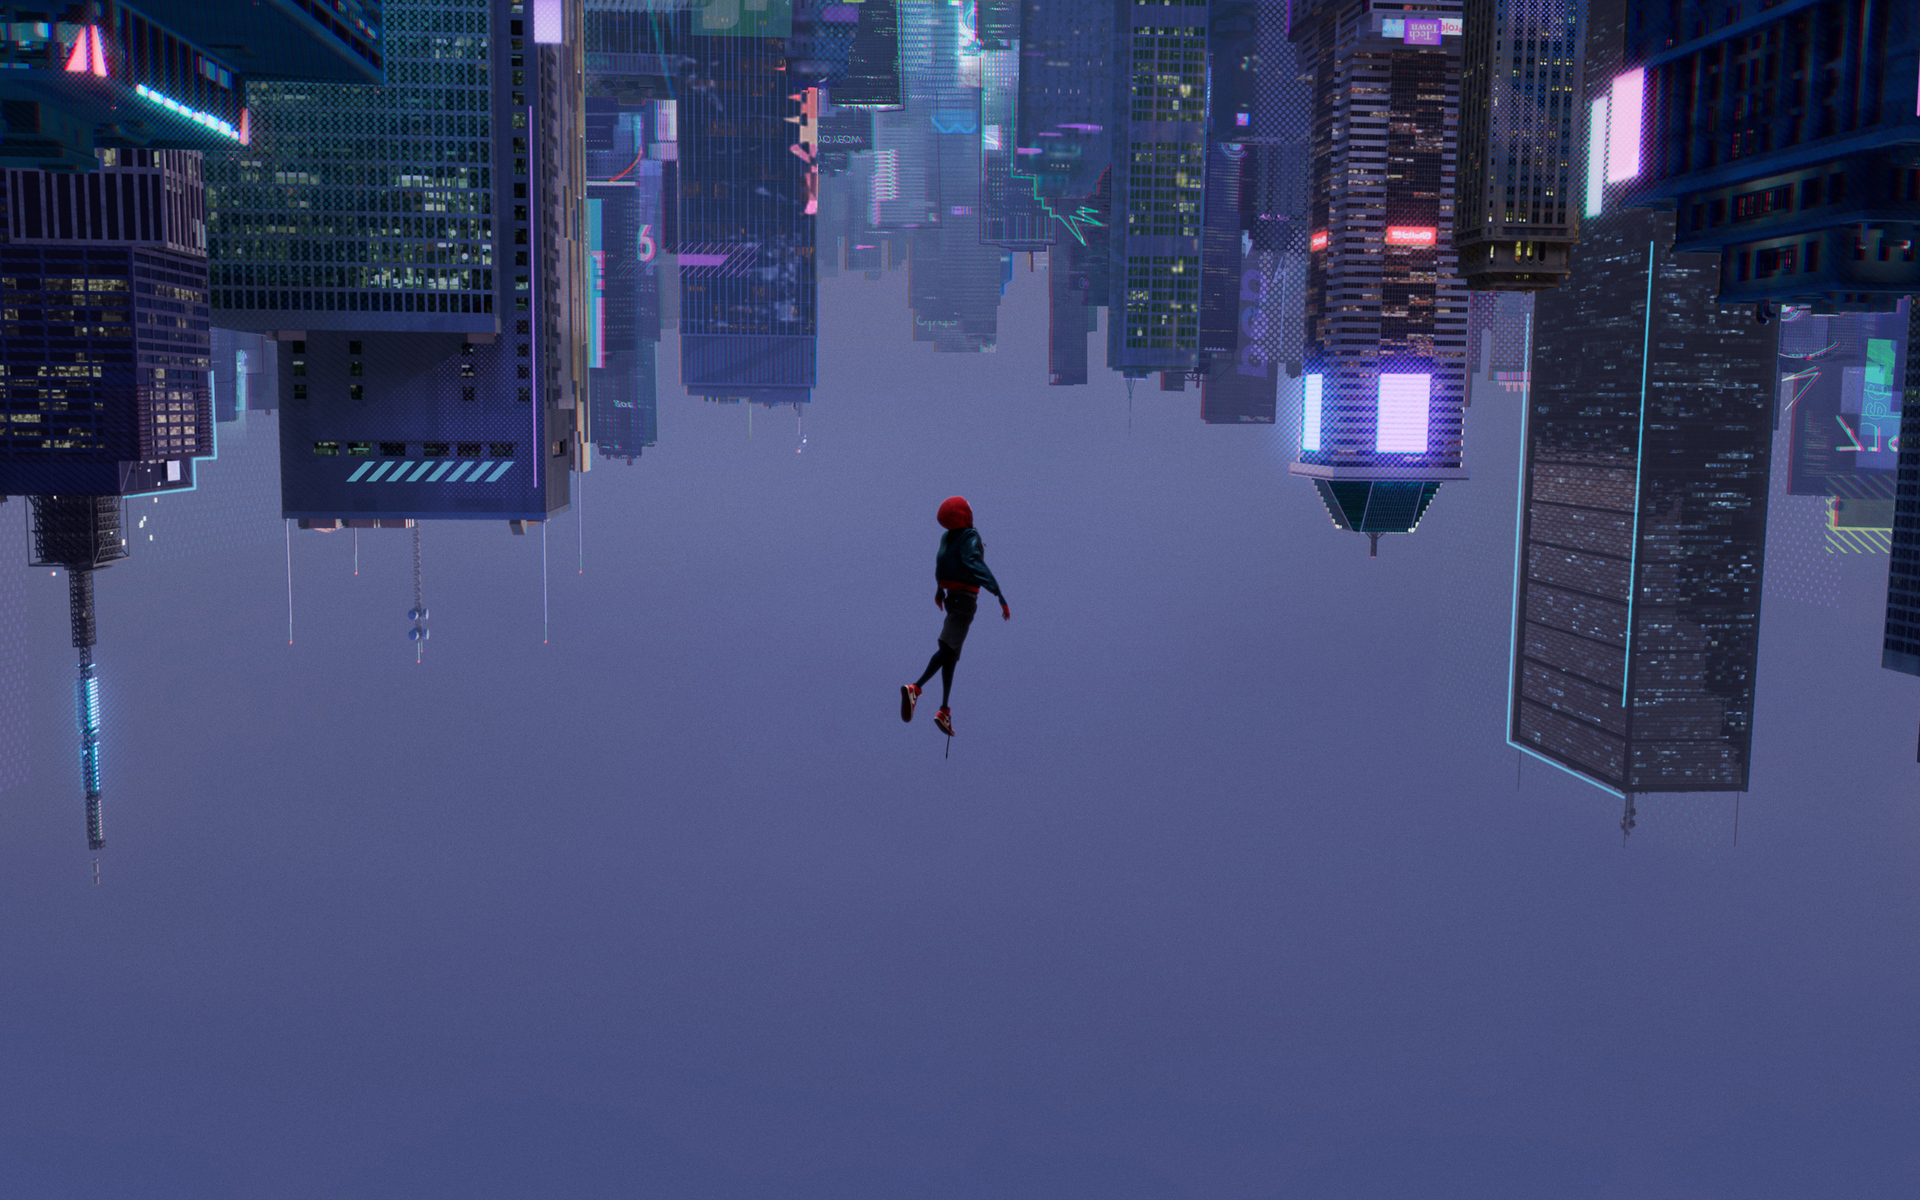 spiderman-into-the-spider-verse-2018-movie-ey.jpg